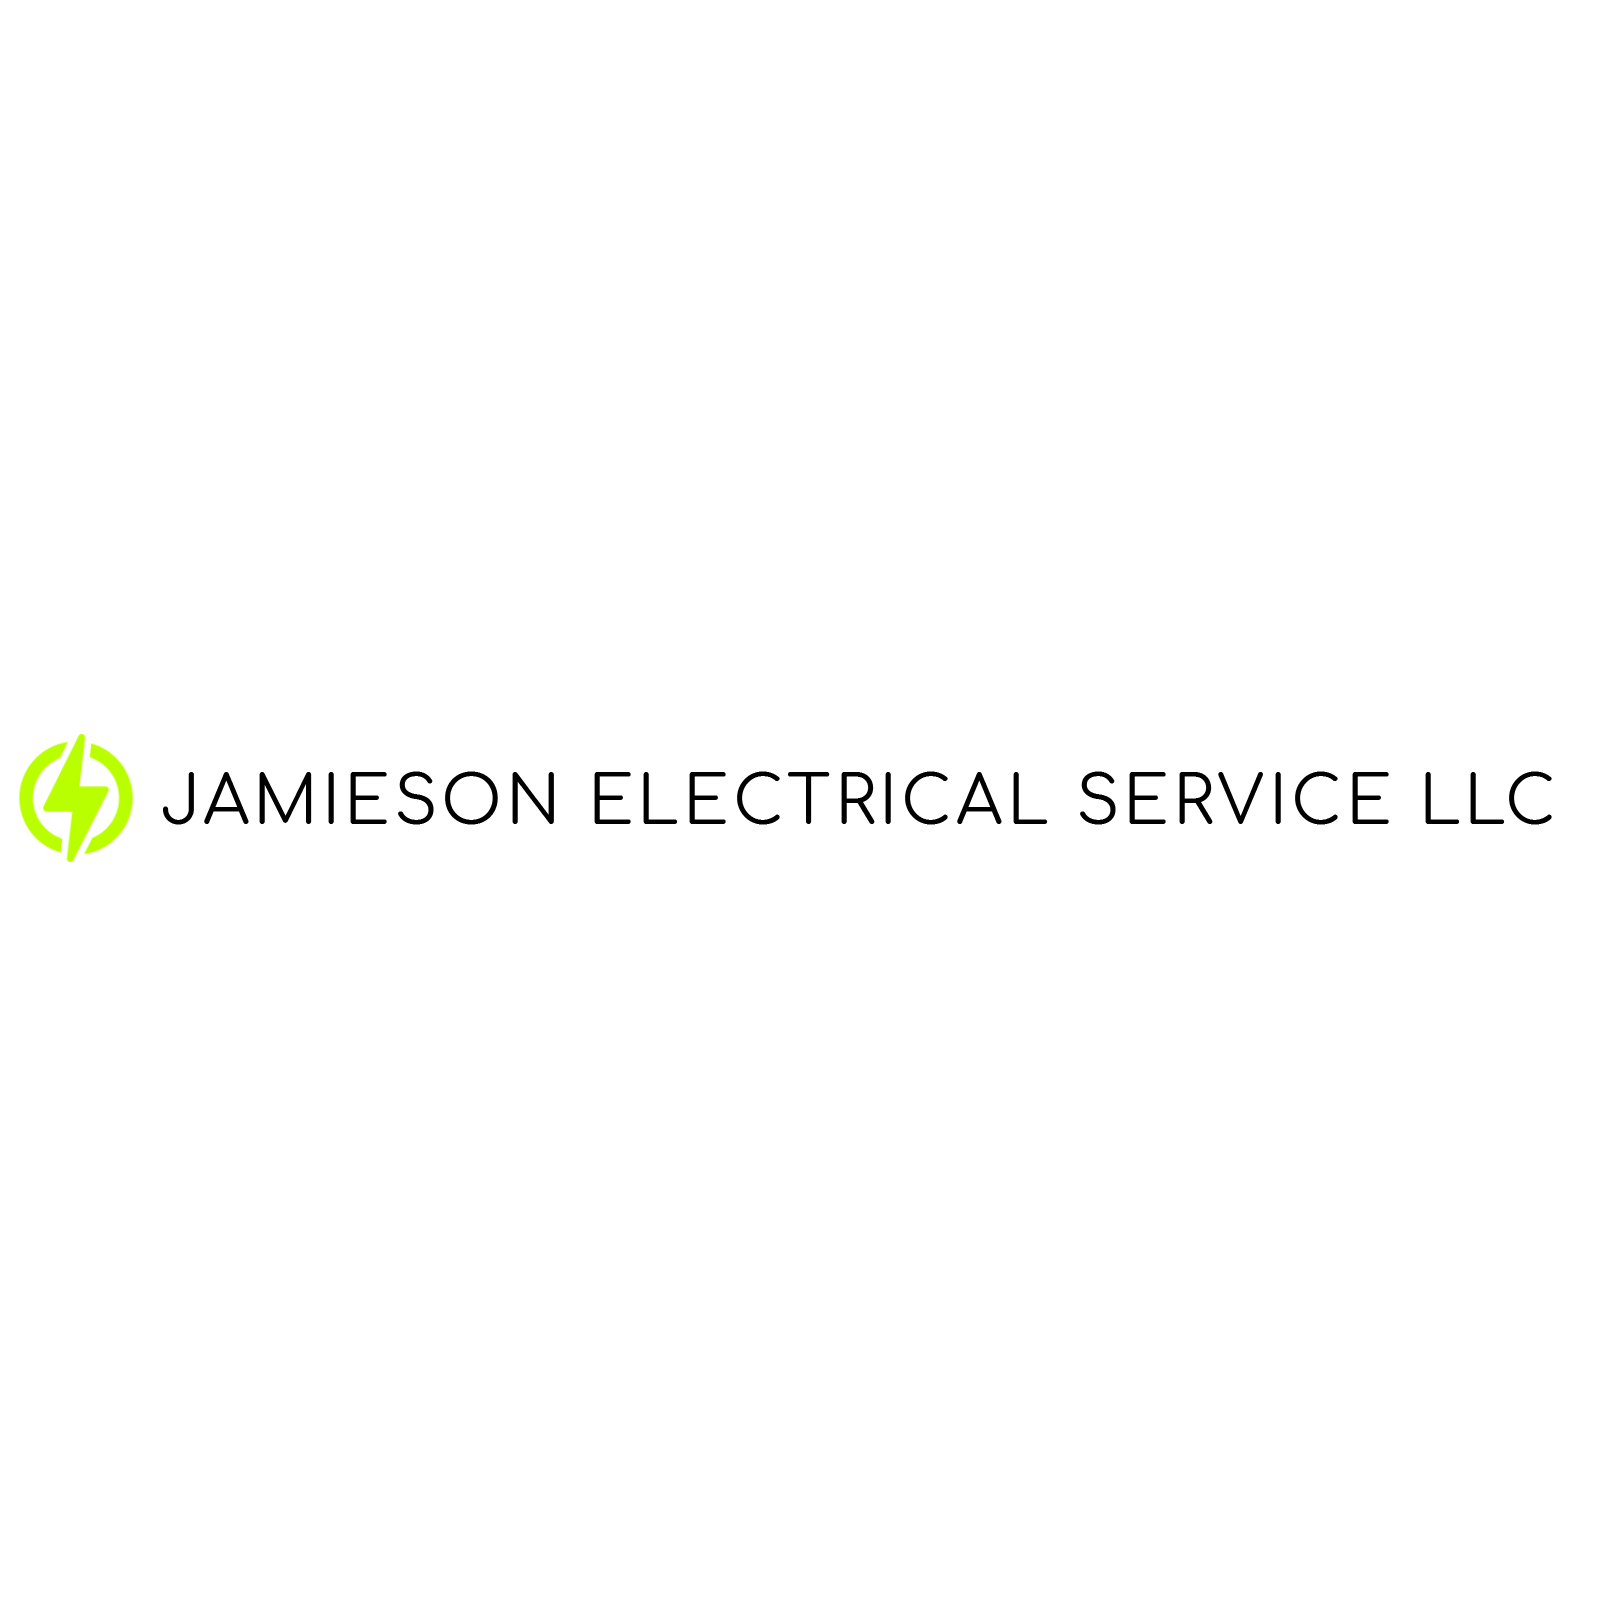 Jamieson Electrical Service